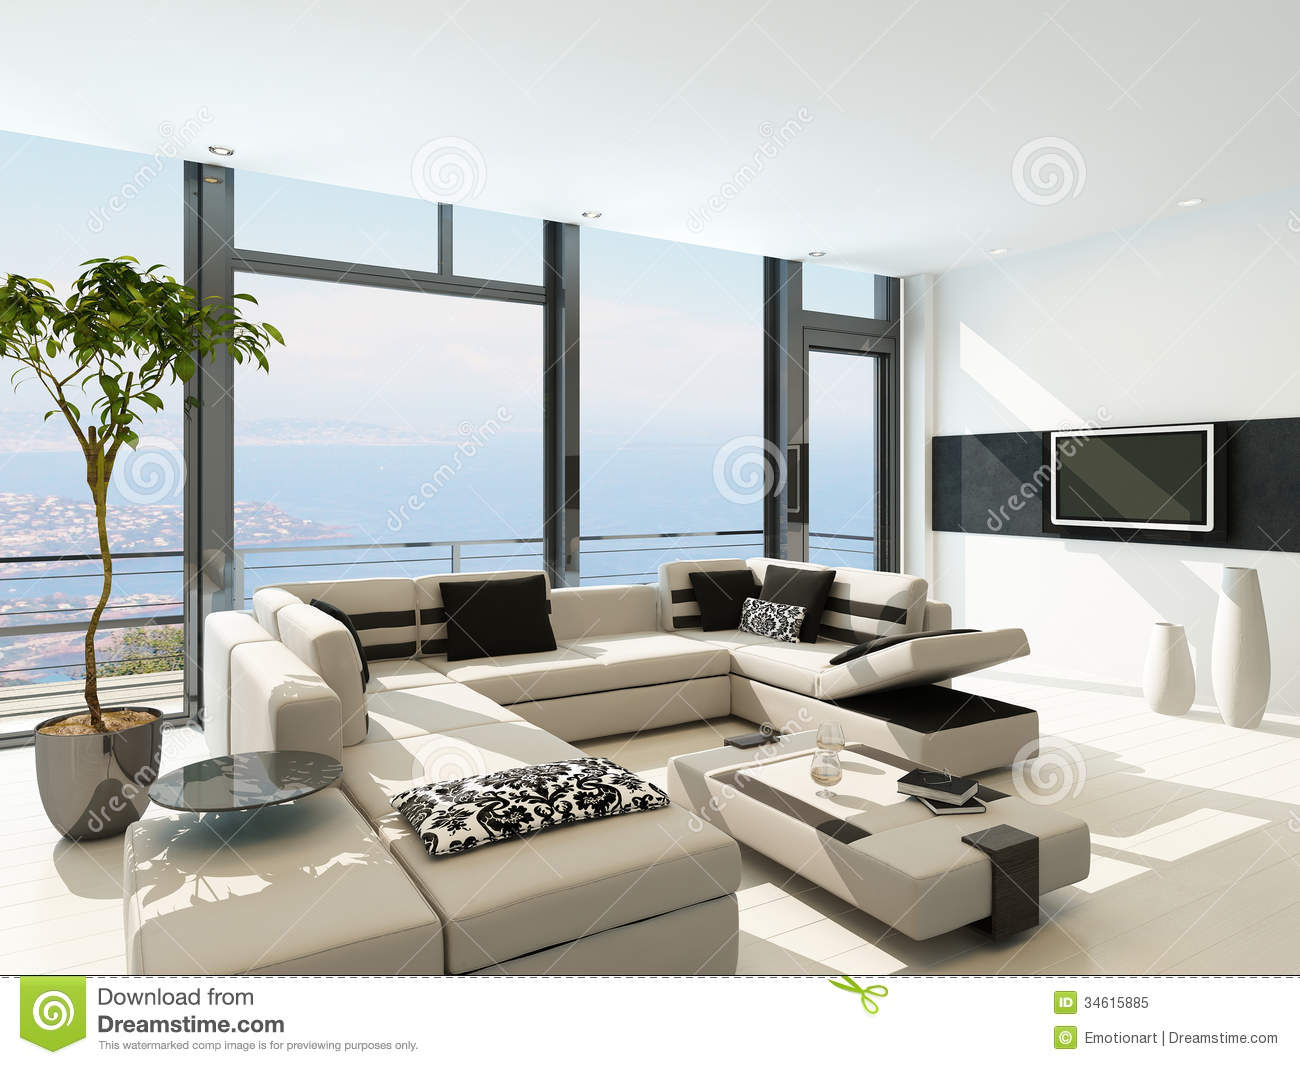 Modern white living room interior with splendid seascape for Maison decoration interieur moderne villas